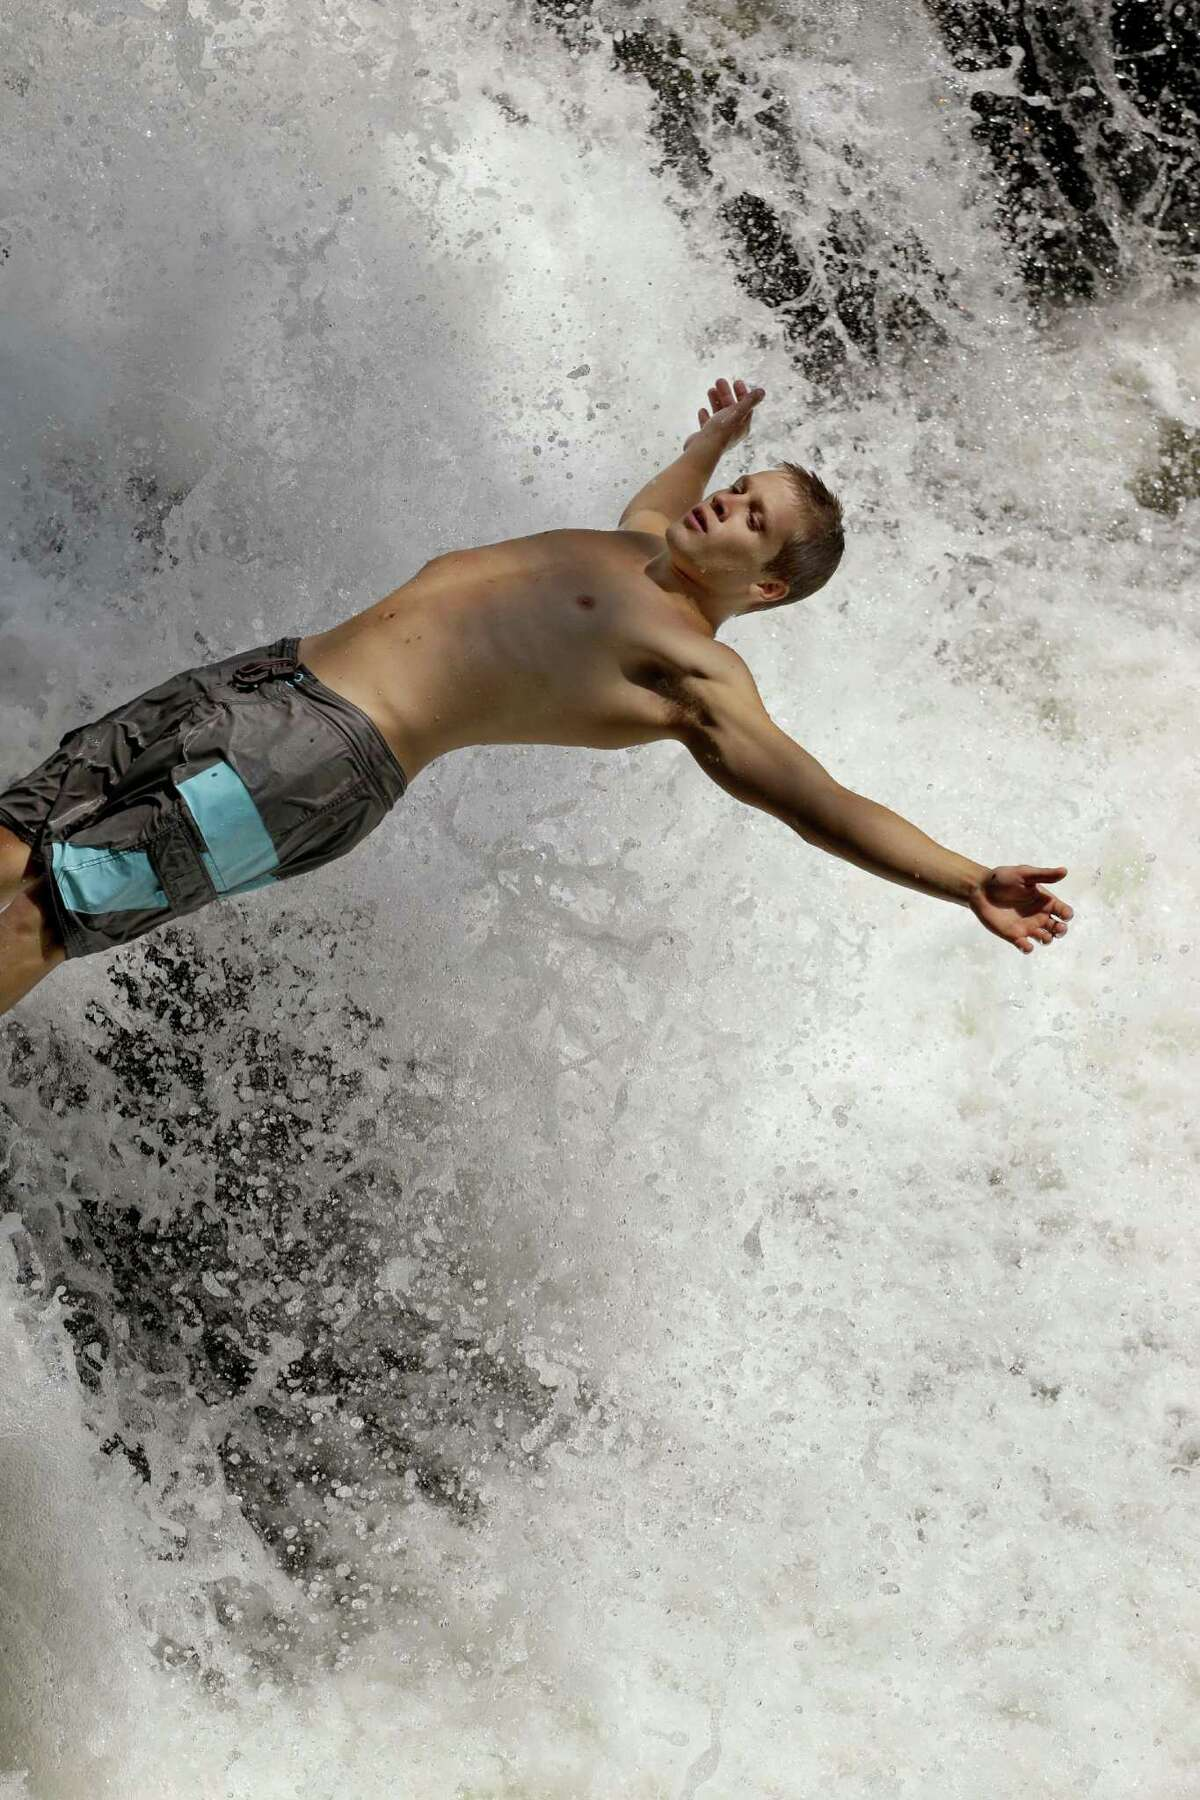 Jamie Scherer jumps off a waterfall during the hot summer weather in Indian Falls, N.Y., Monday, July 16, 2012.